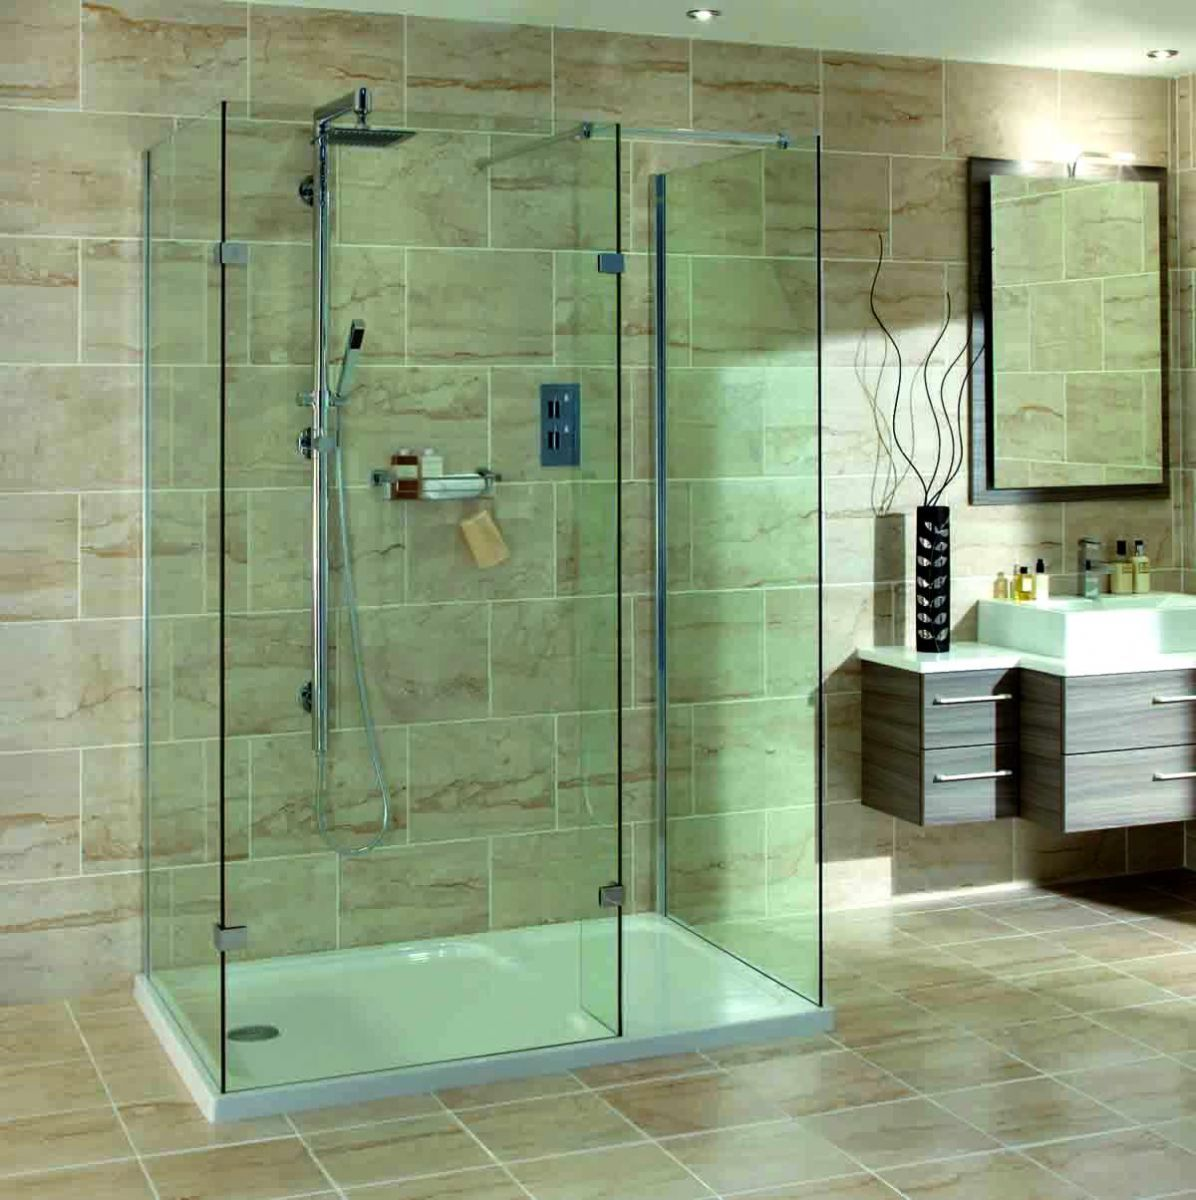 3 Panel Shower Enclosure | Sevenstonesinc.com